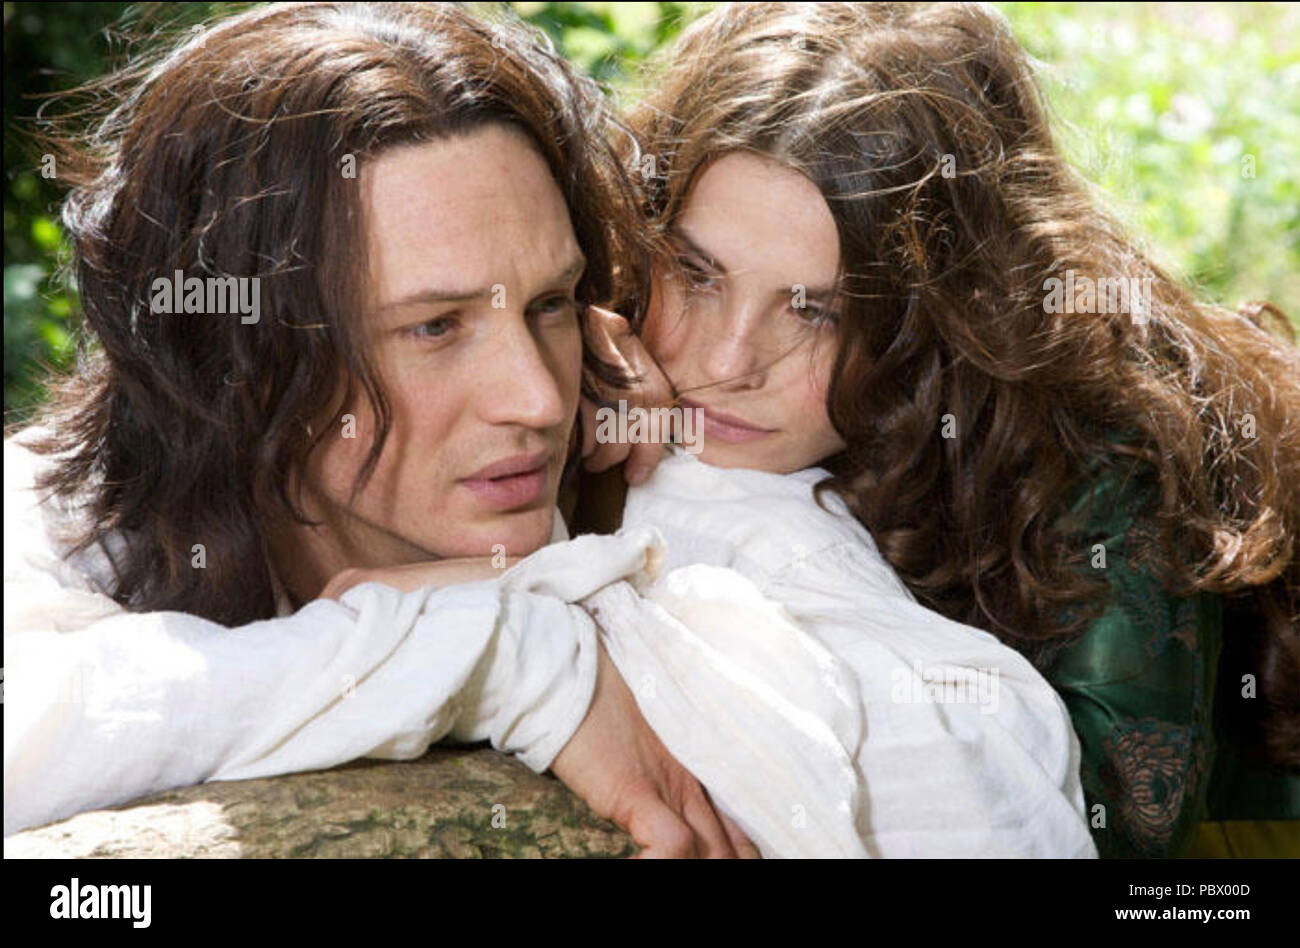 WUTHERING HEIGHTS 2009 Mammoth Screen TV series with Tom Hardy and Charlotte Riley - Stock Image